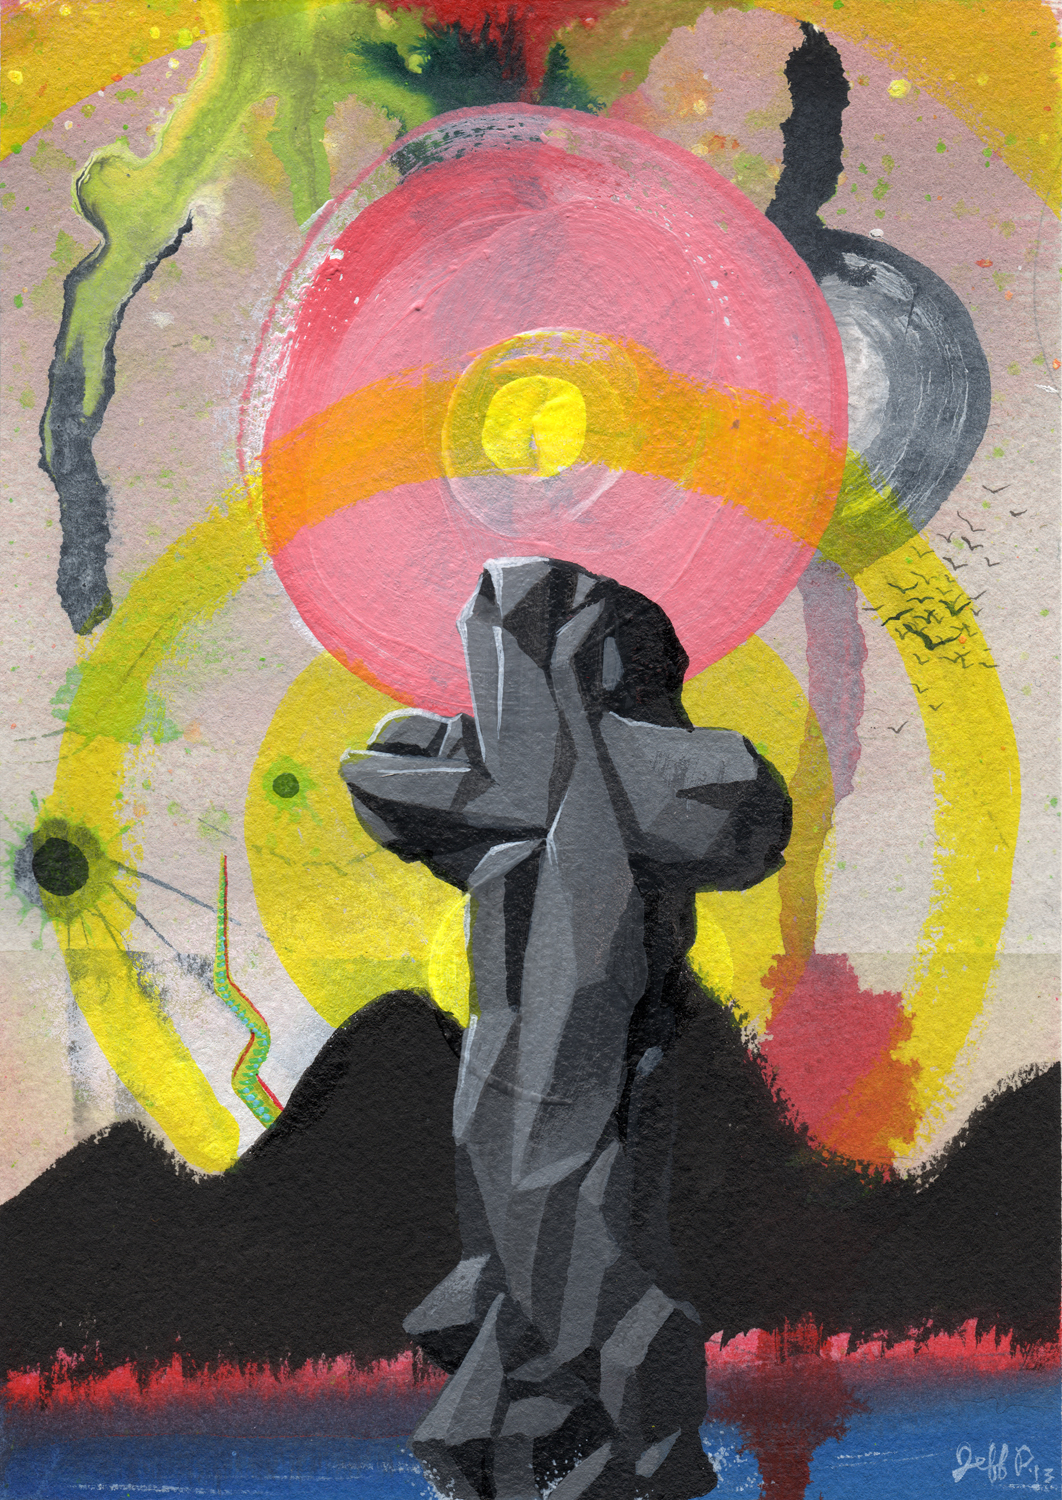 Acrylic, Acrylic Ink on Paper  7 x 5 inches  2013